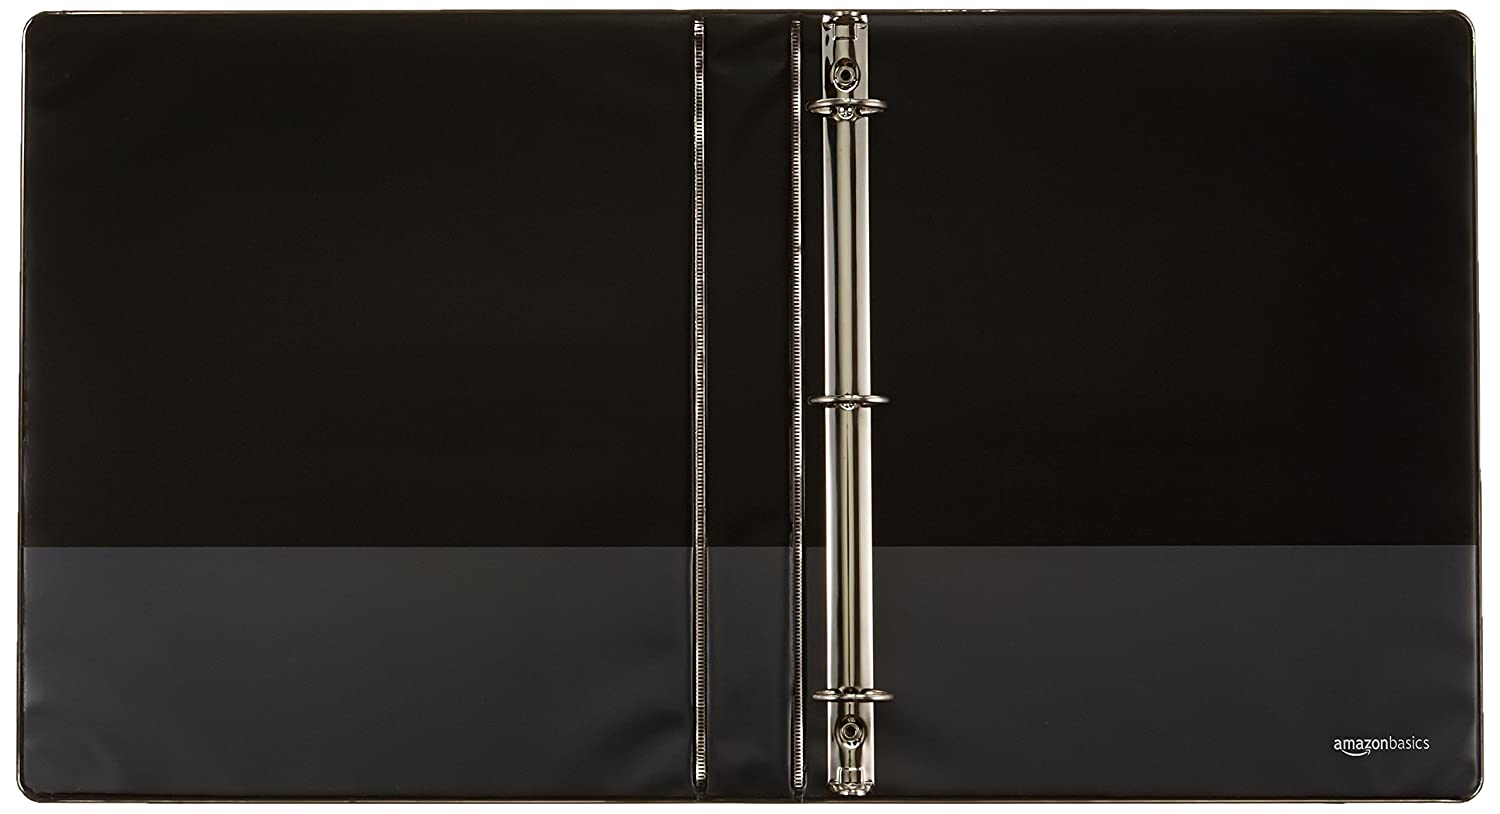 Amazonbasics 3 ring binder 1 inch 4 pack black : amazon.ca